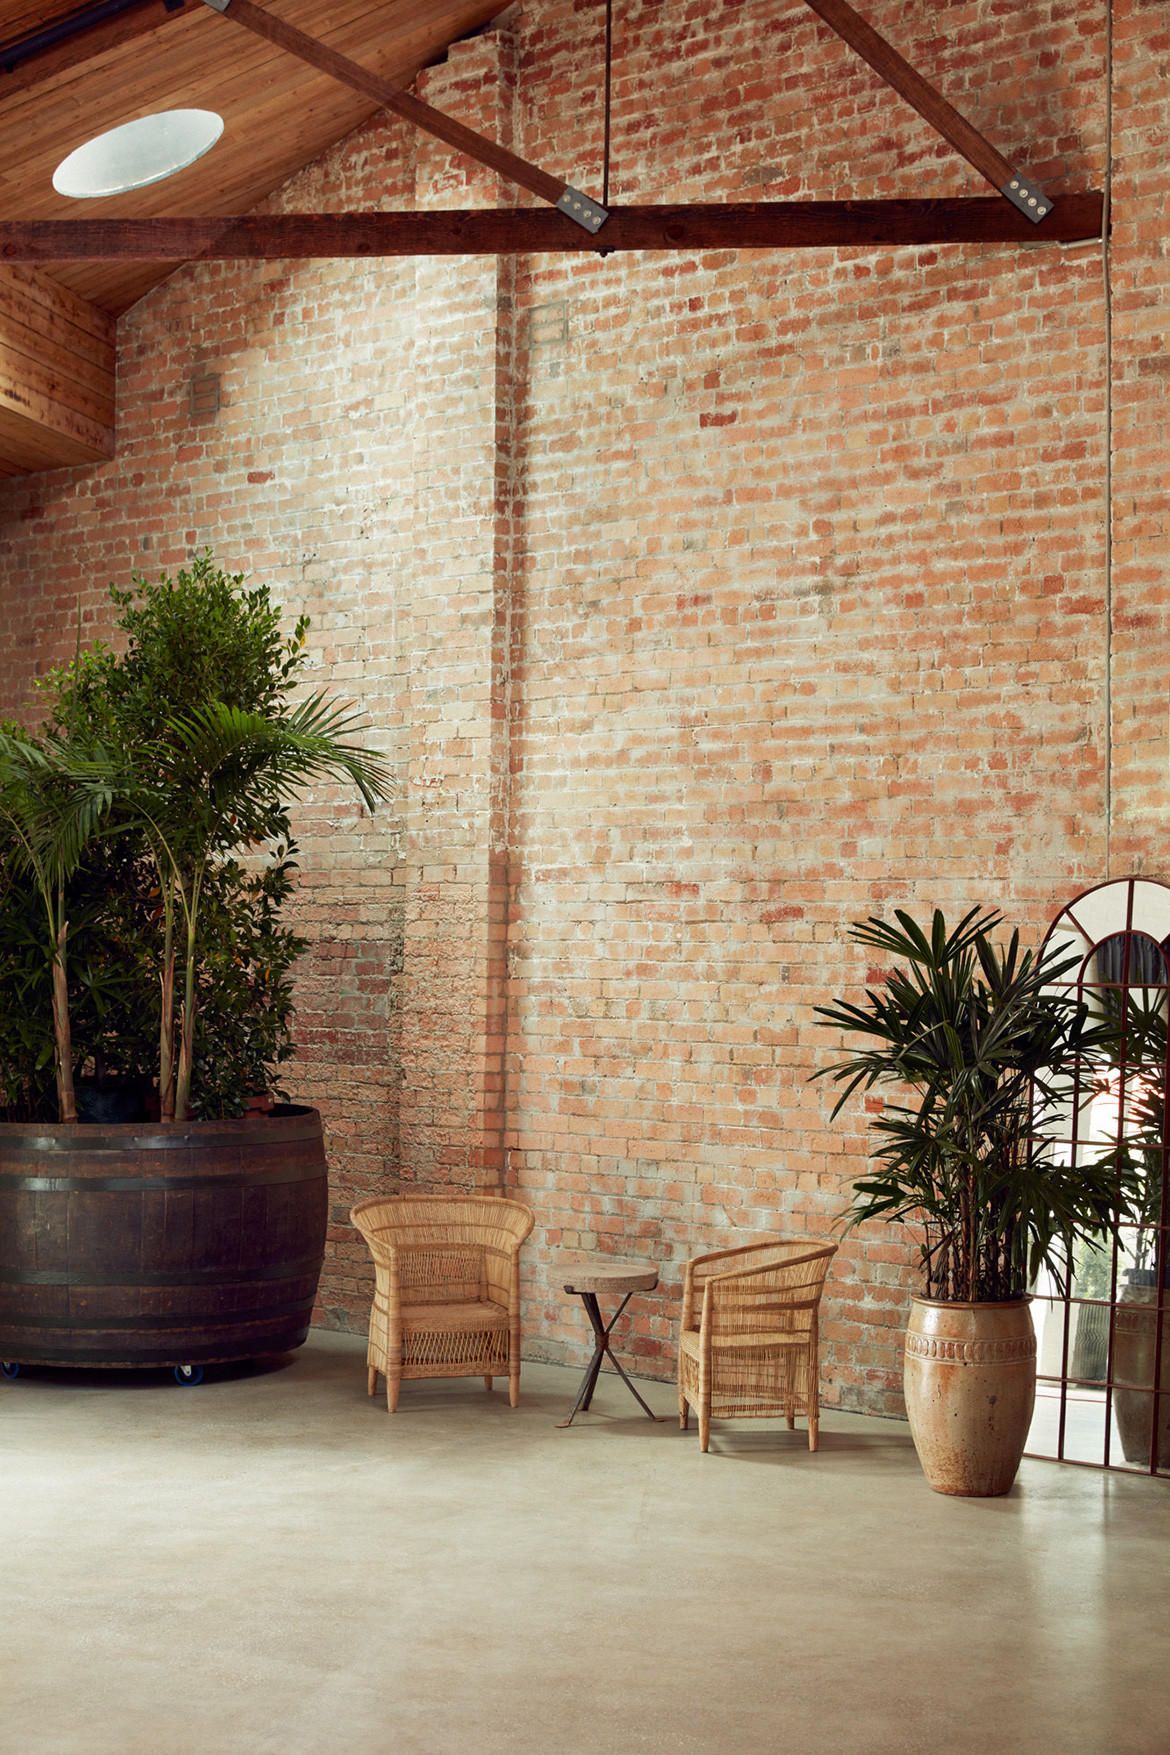 Half Acre Adam Leigh Asaf Studio Pasquale CC Tom Ross exposed brick and timber